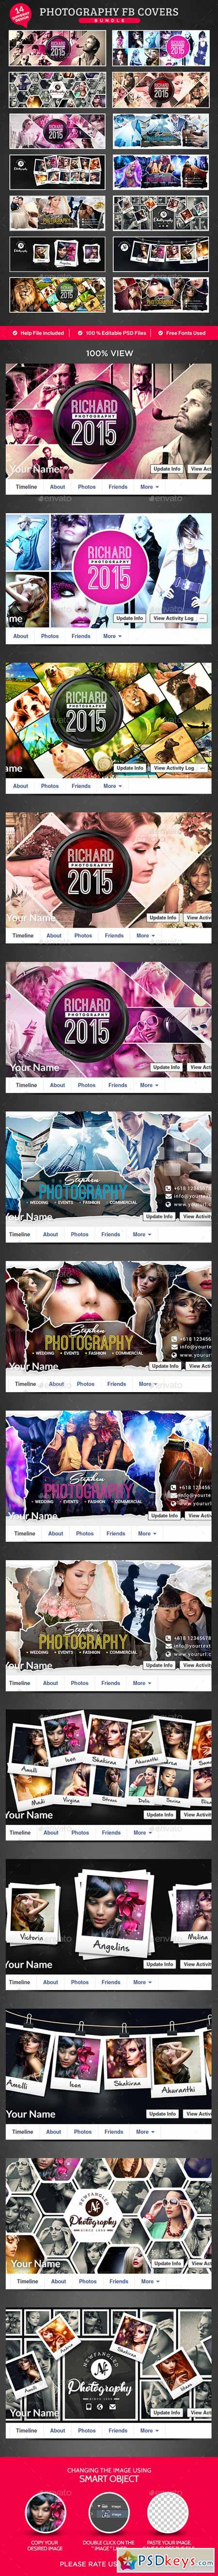 Photography Facebook Cover Bundle 14 Designs 13139472